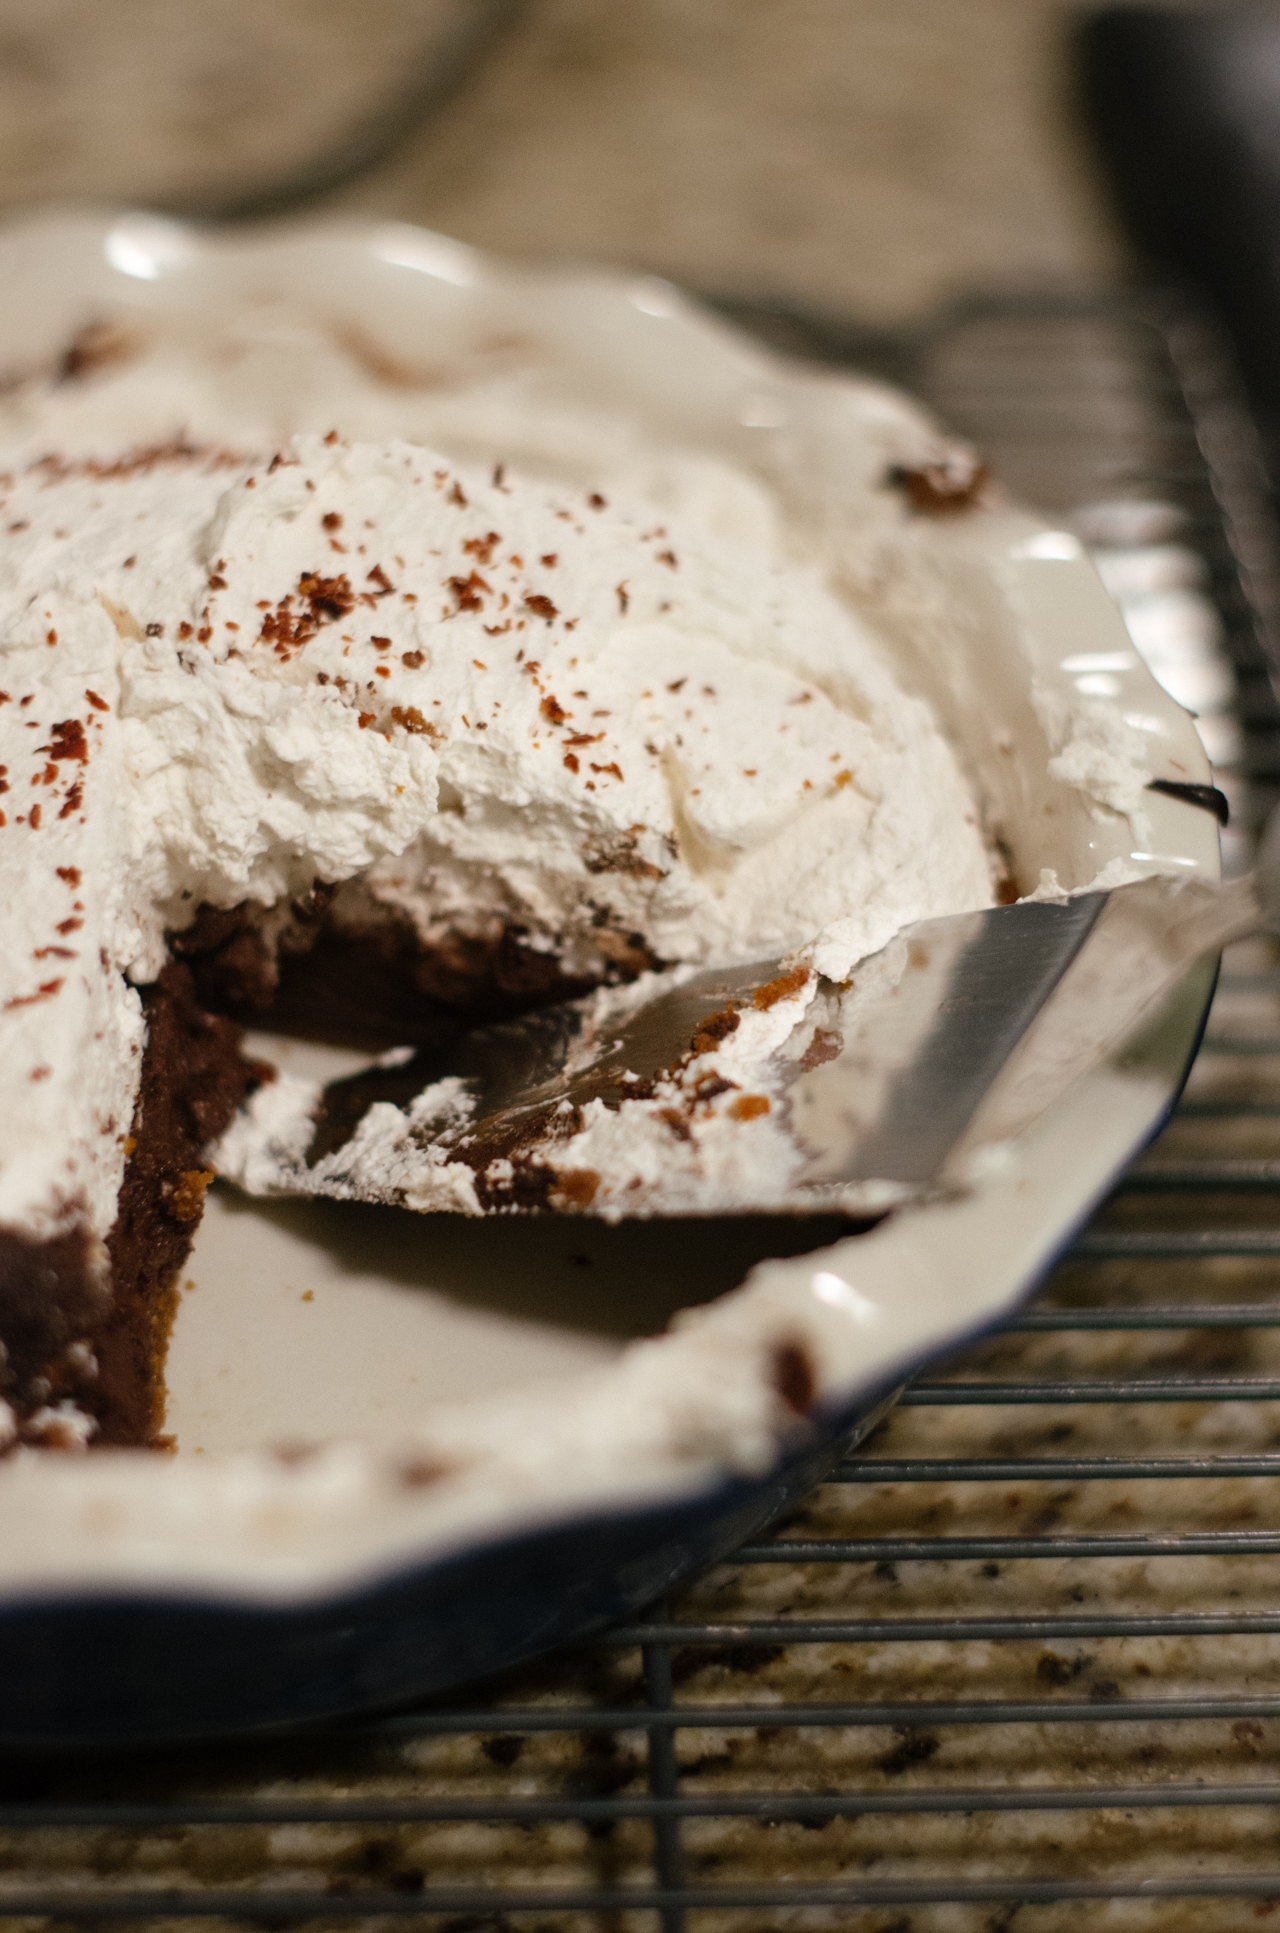 I made this Mexican Chocolate Pie (Allison Kave,  First Prize Pies ) after receiving a job offer.